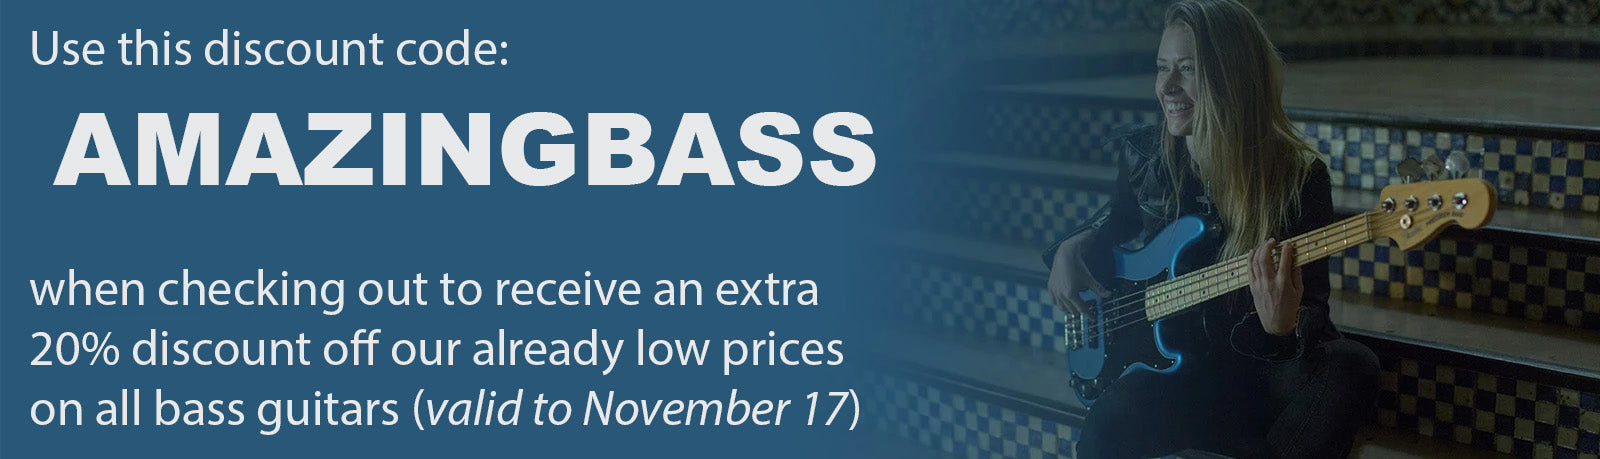 Get an extra 20% off all bass guitars with this discount code